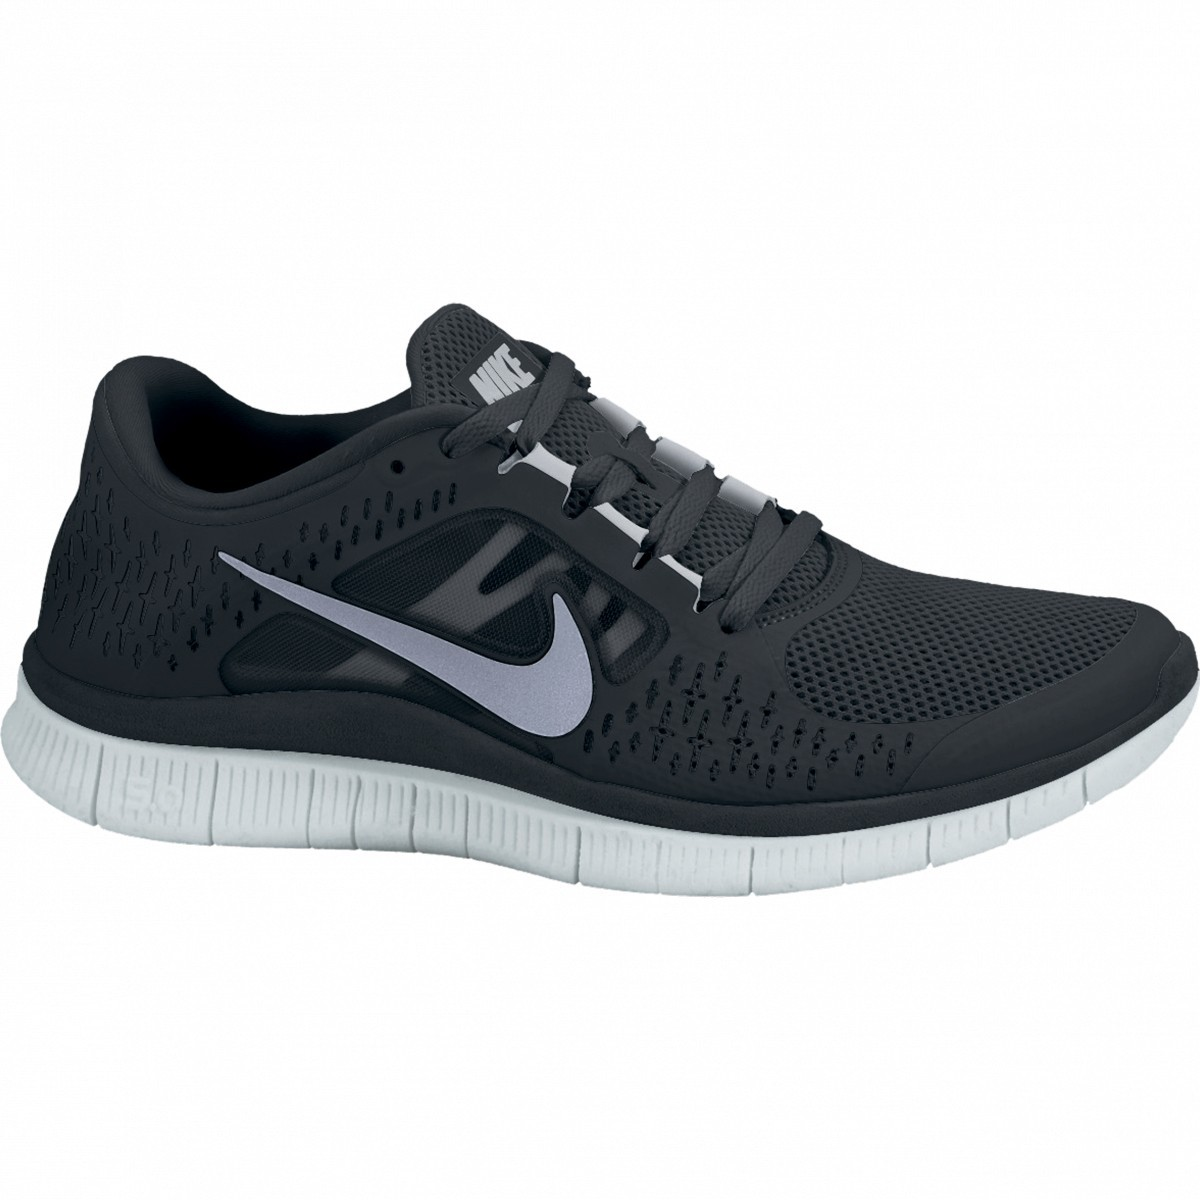 nike free run 3 damen mint 2018 nike free run 3 damen mint. Black Bedroom Furniture Sets. Home Design Ideas